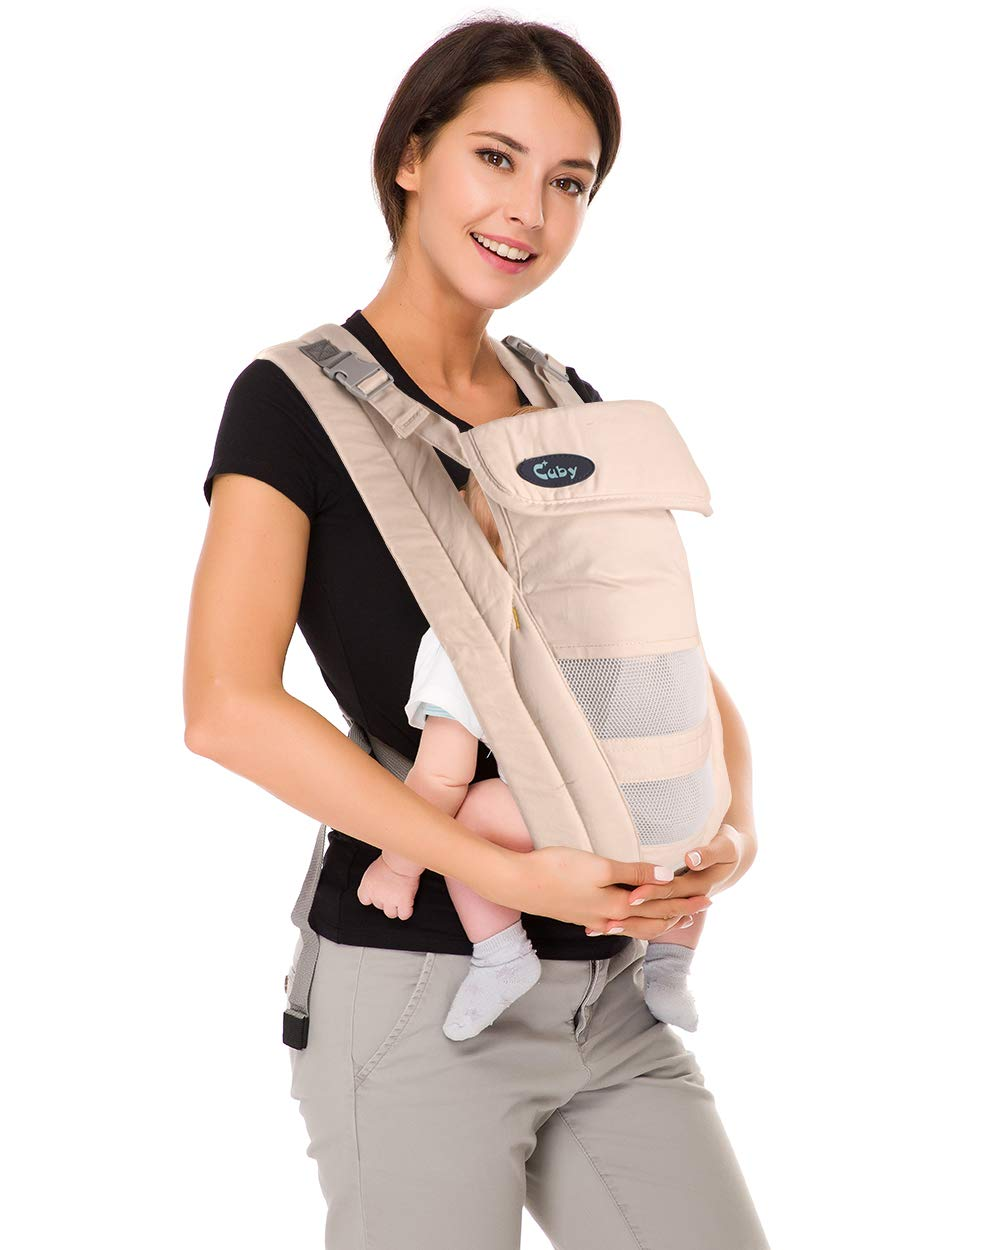 Cuby Ergonomic Baby Carrier,Classic Carrier, Soft & Breathable Baby Carriers Backpack Front and Back for Infants to Toddlers Up to 36 lbs (Apricot)